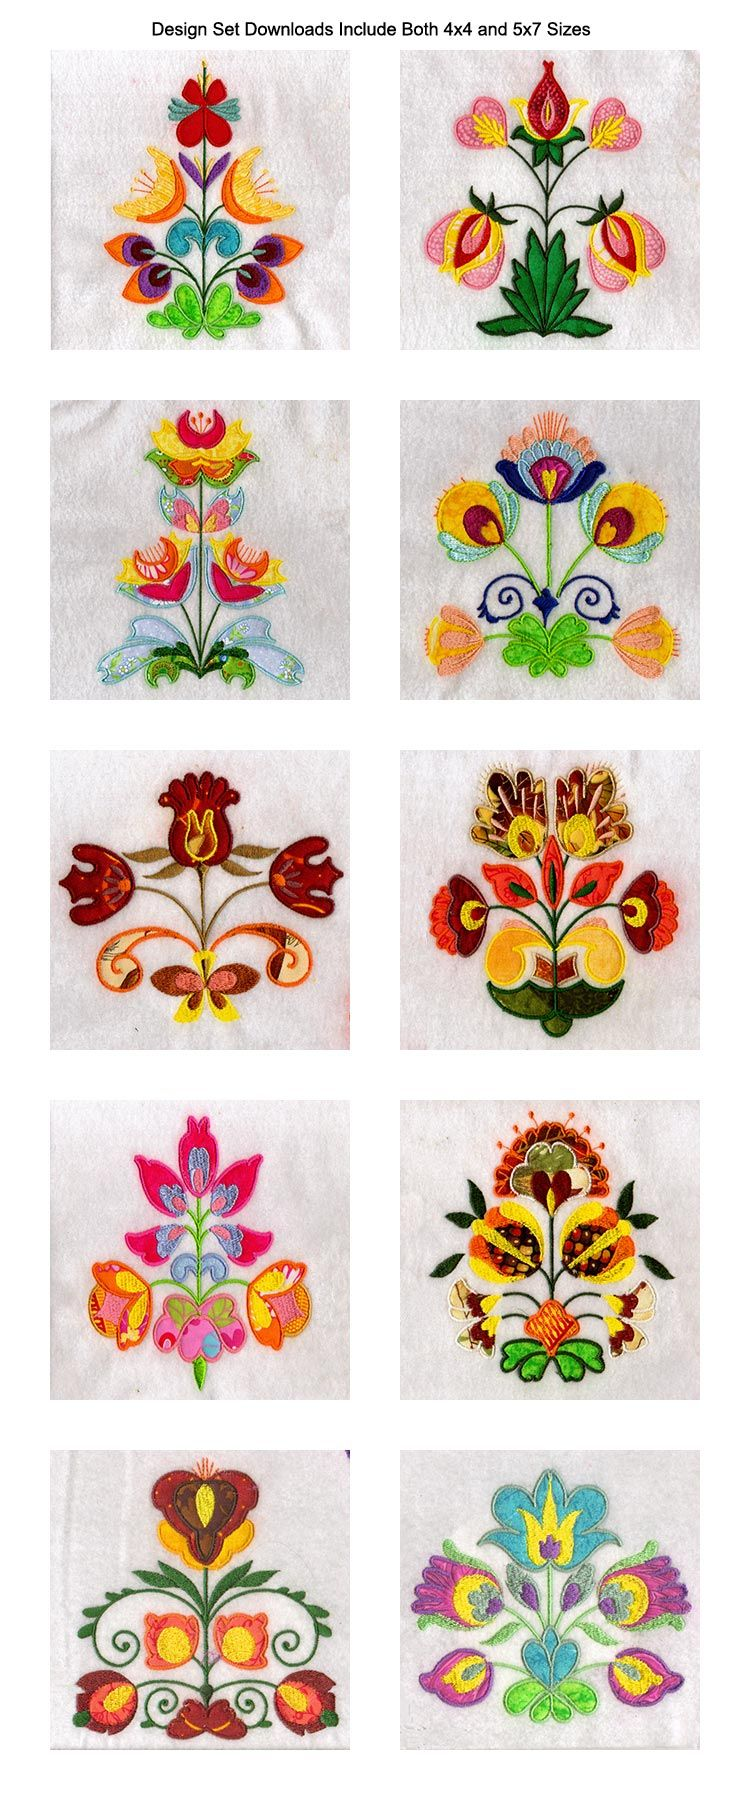 Applique folkart flowers embroidery machine design details 北欧